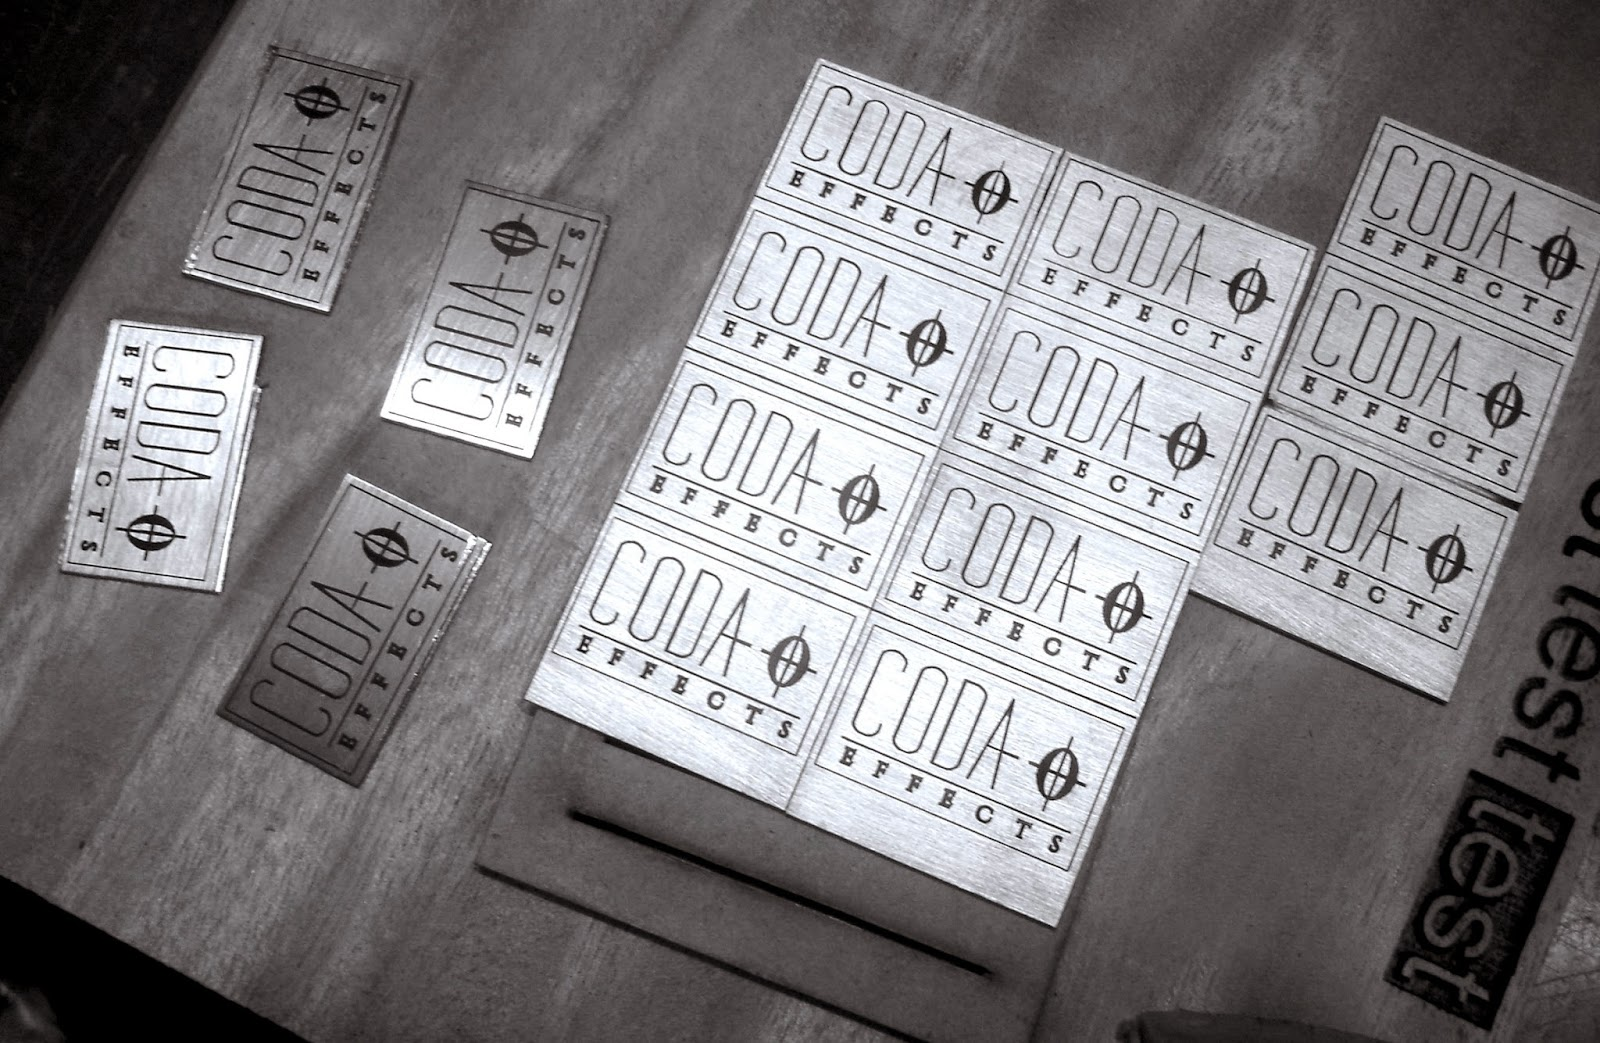 Coda Effects Laser Engraved Plates